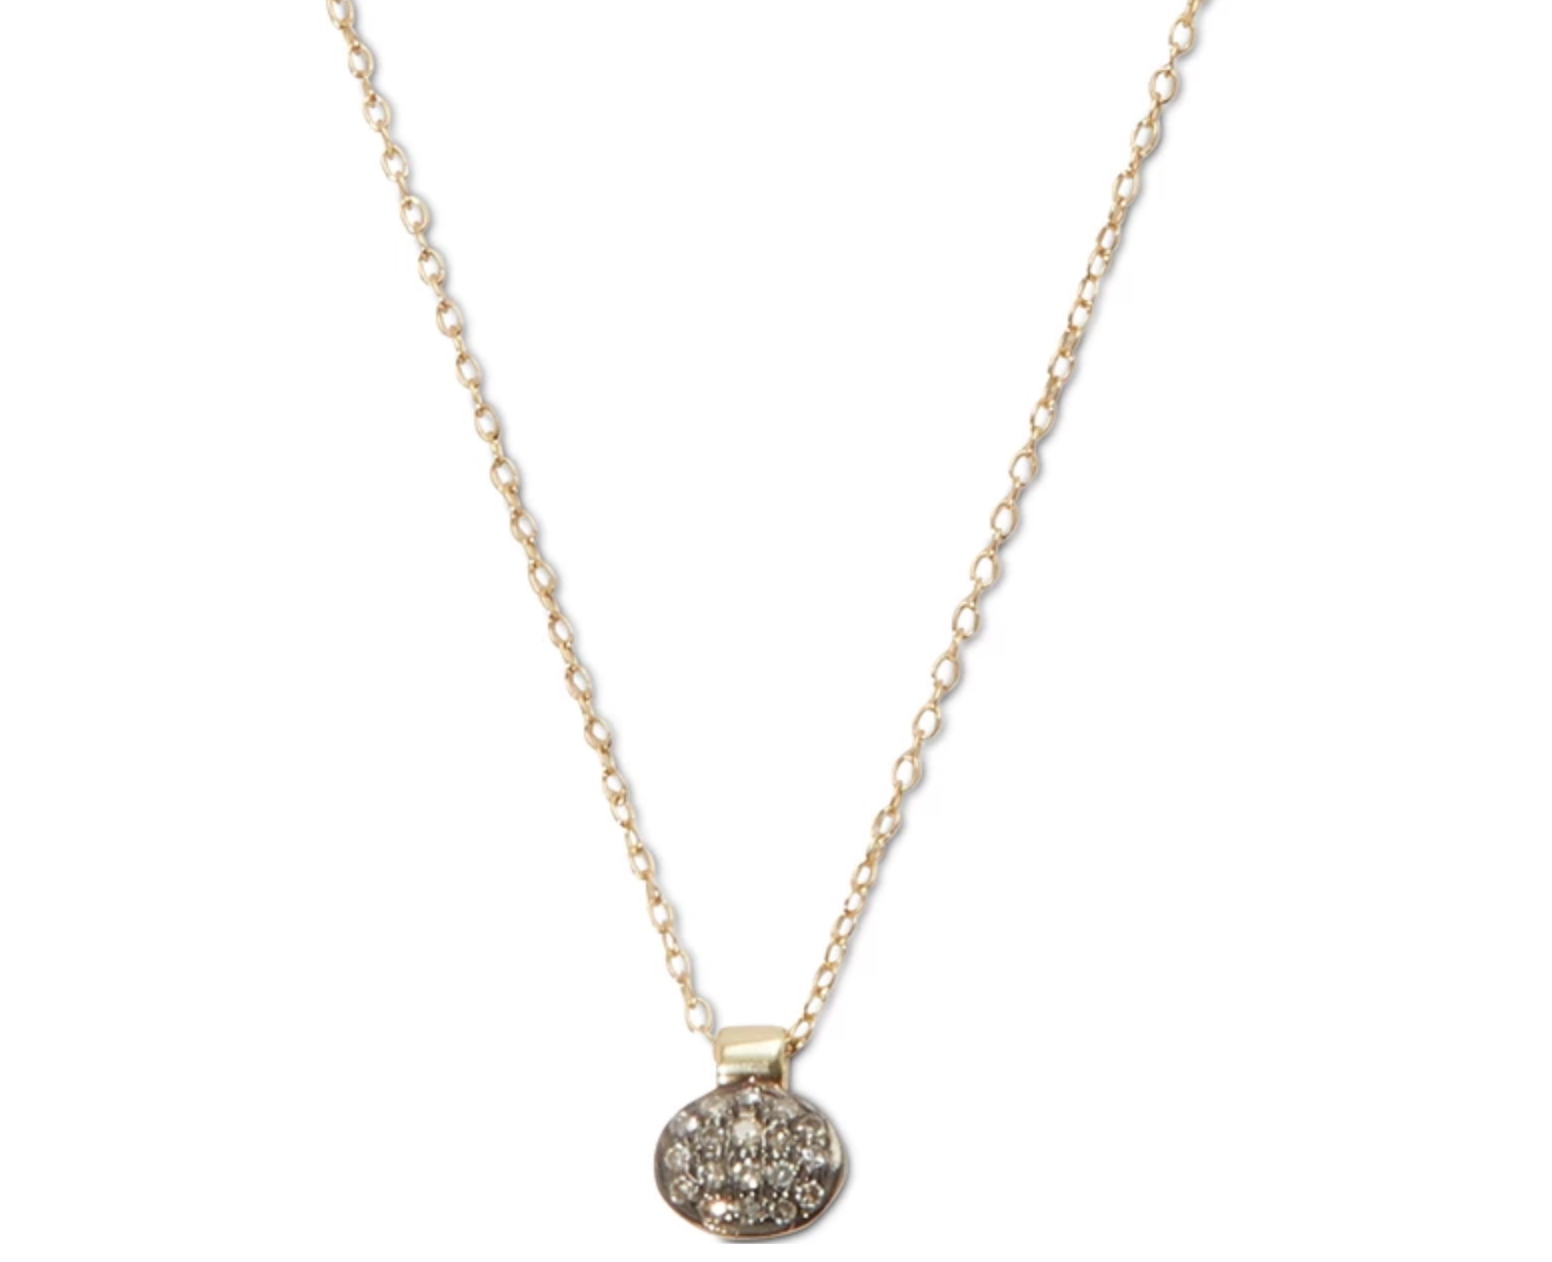 Arno Diamond necklace - Big Bag